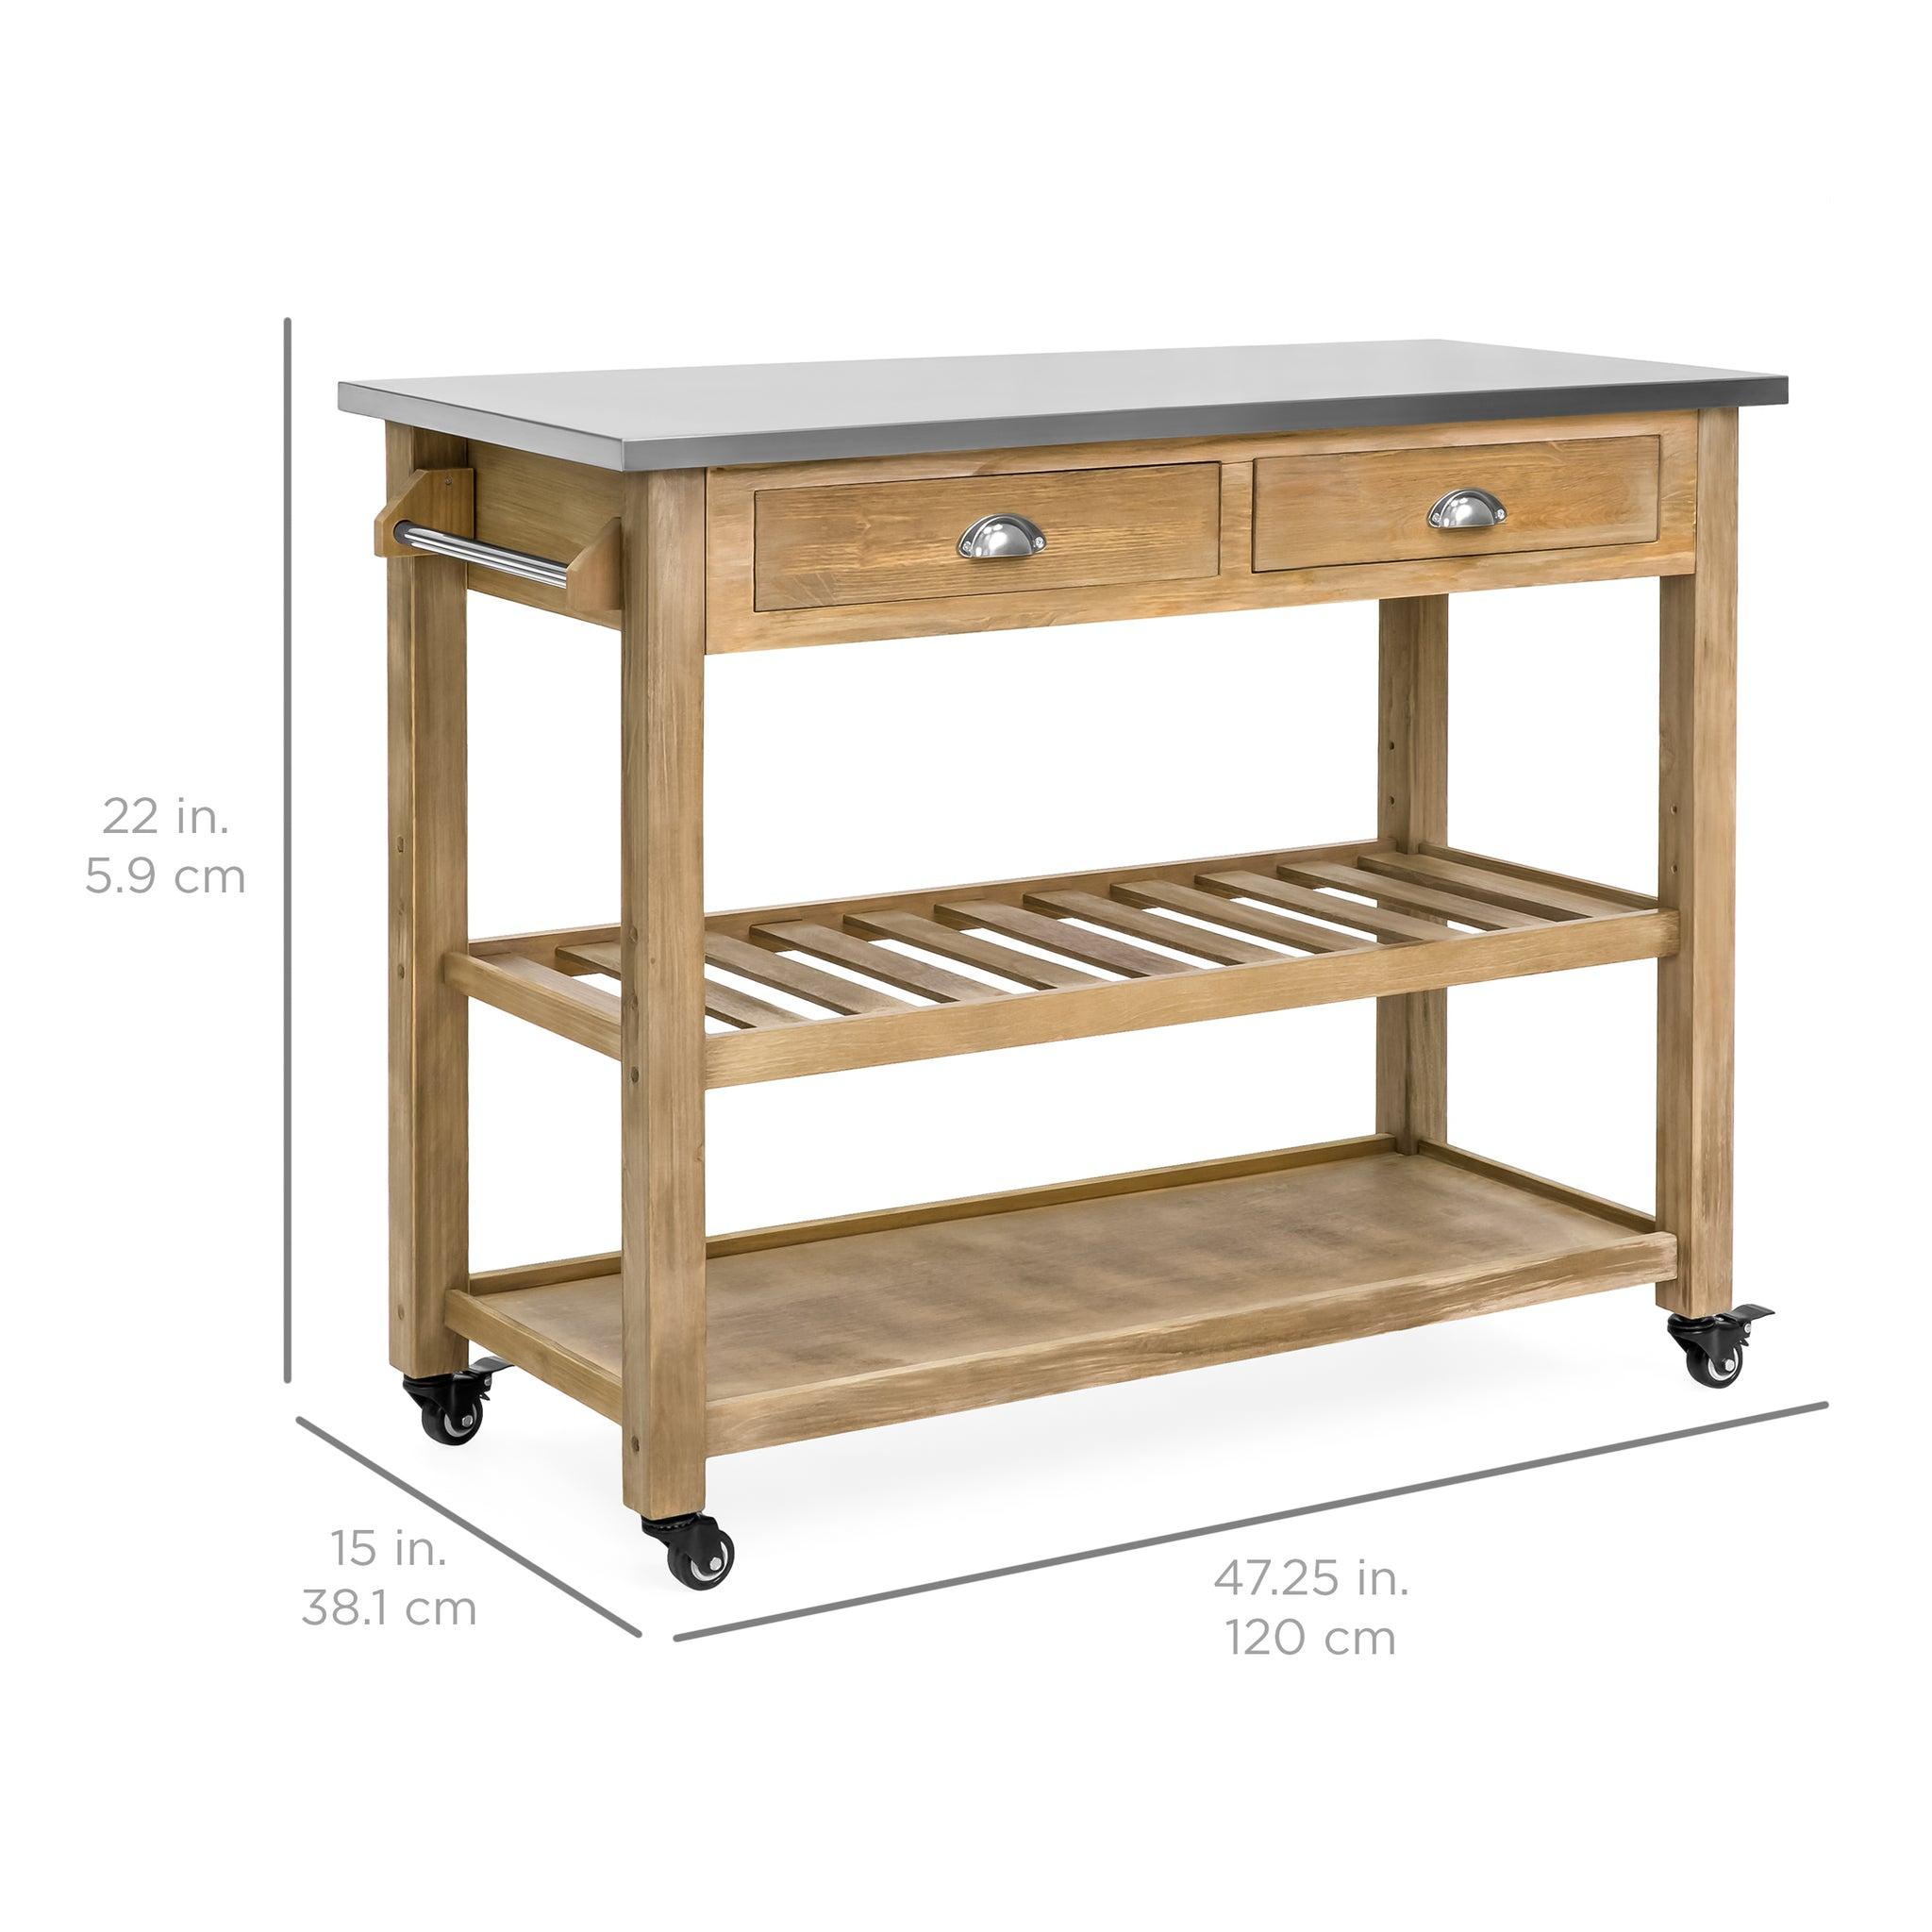 Kitchen Island Storage & Bar Cart w Stainless Steel Top Rustic